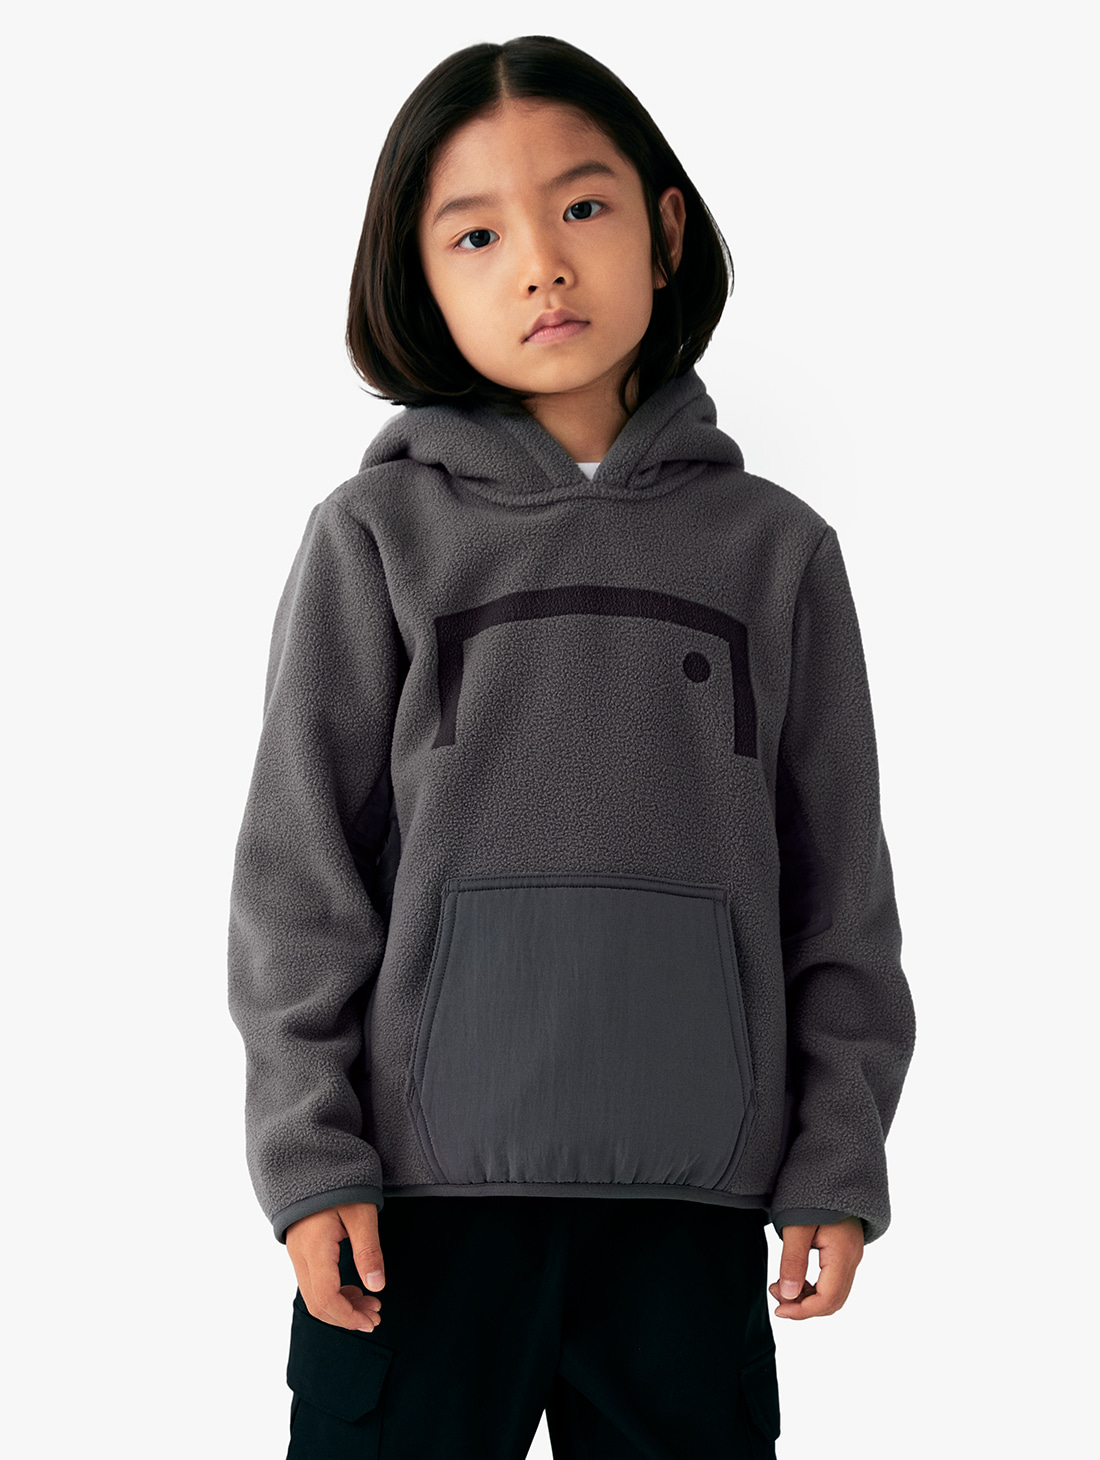 GOALSTUDIO (KIDS) NYLON METAL MIXED FLEECE HOODIE (2 Colors)